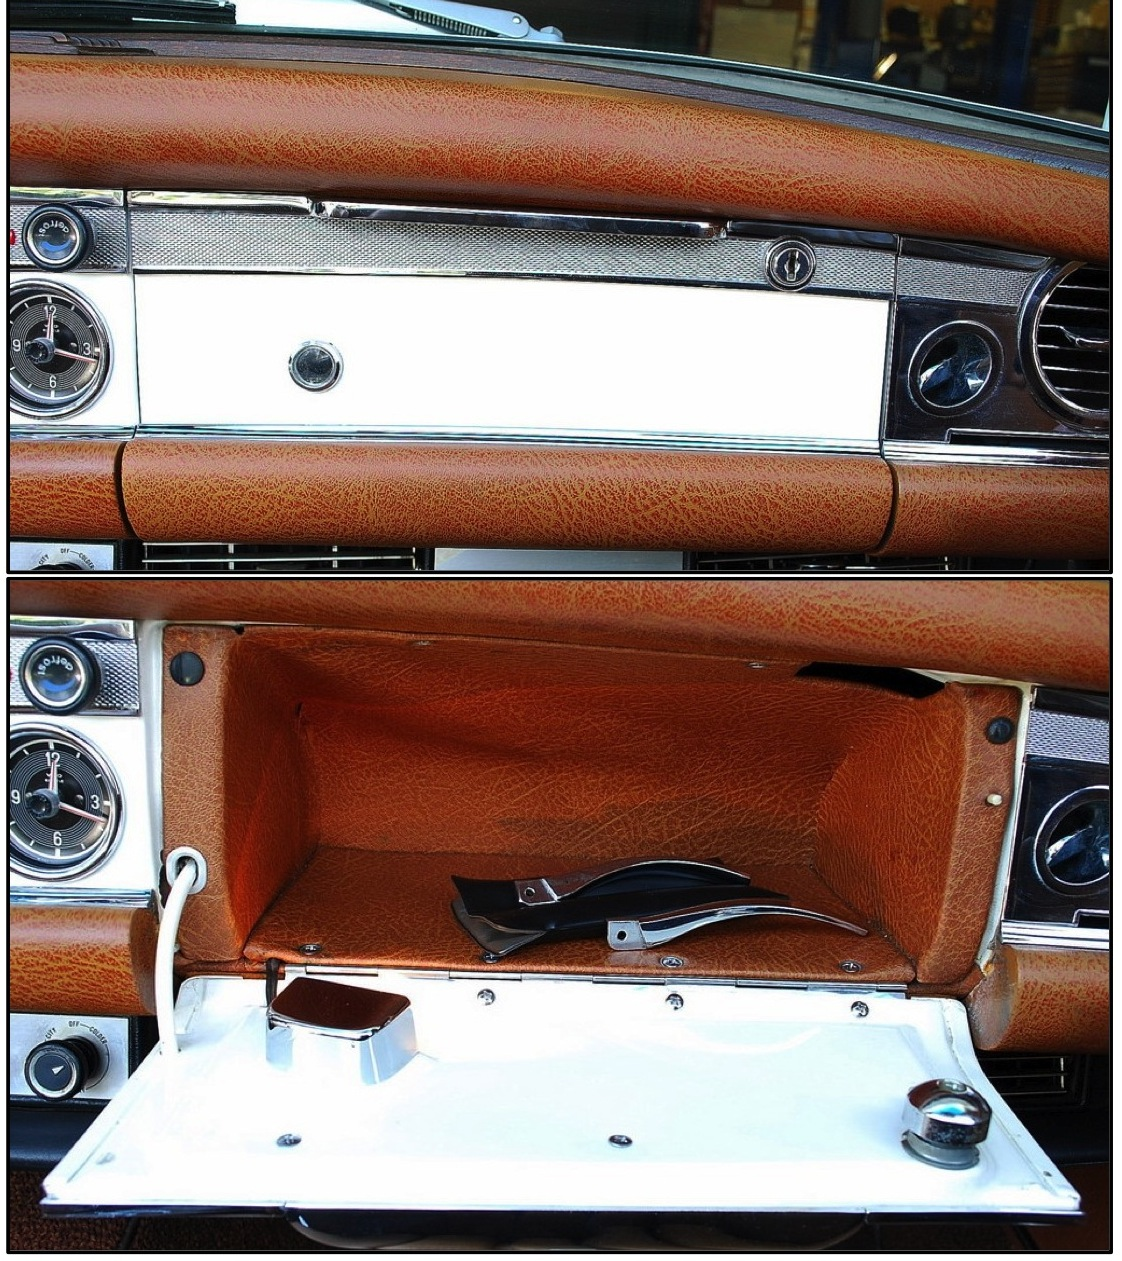 Pagoda Sl Group Technical Manual Interior Glovebox